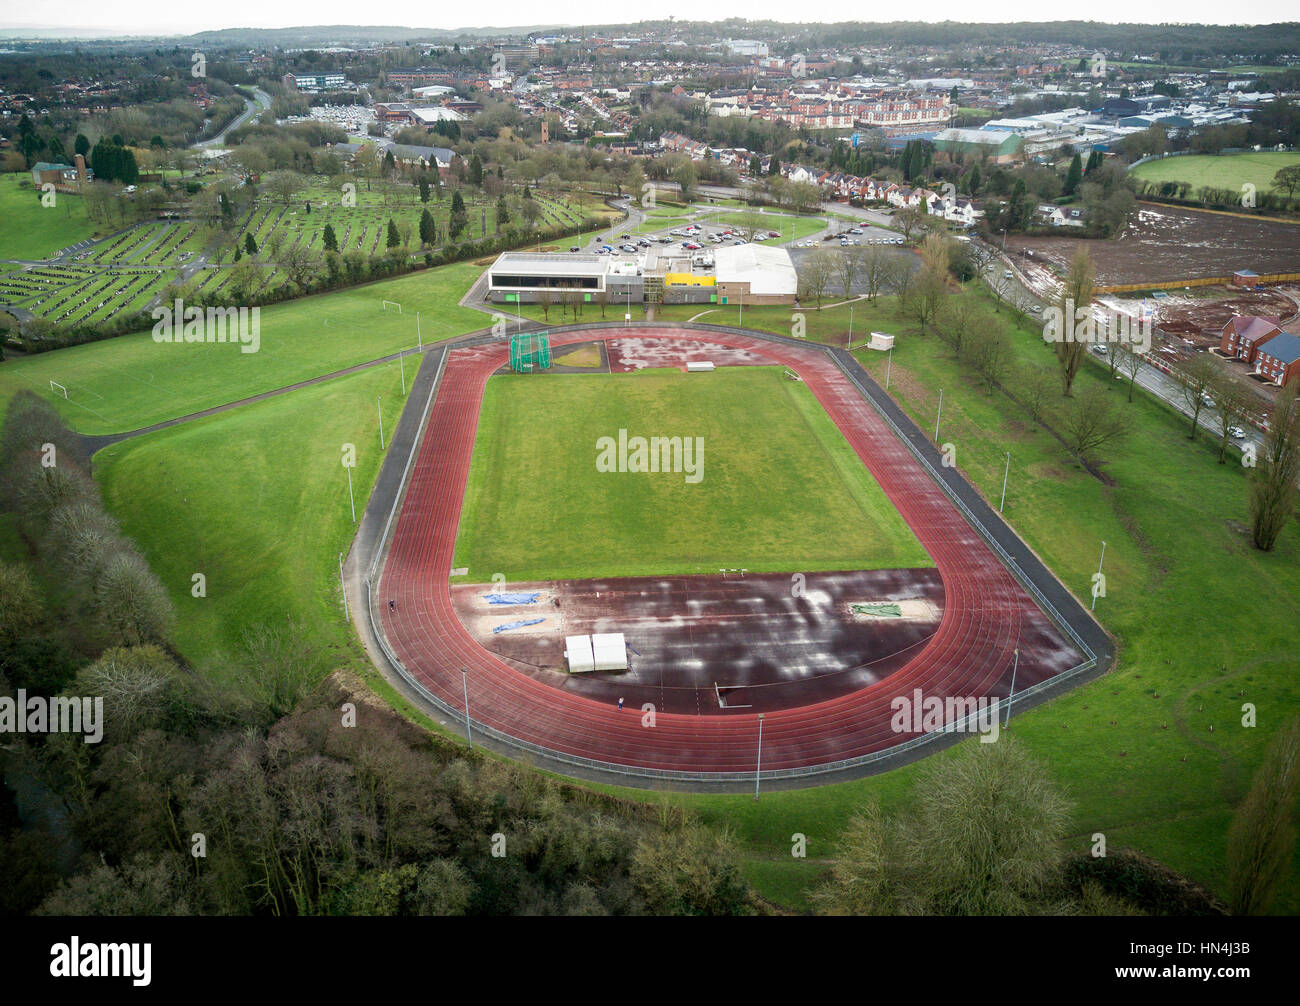 The Abbey Stadium athletics track in the Worcestershire town of Redditch, UK. - Stock Image